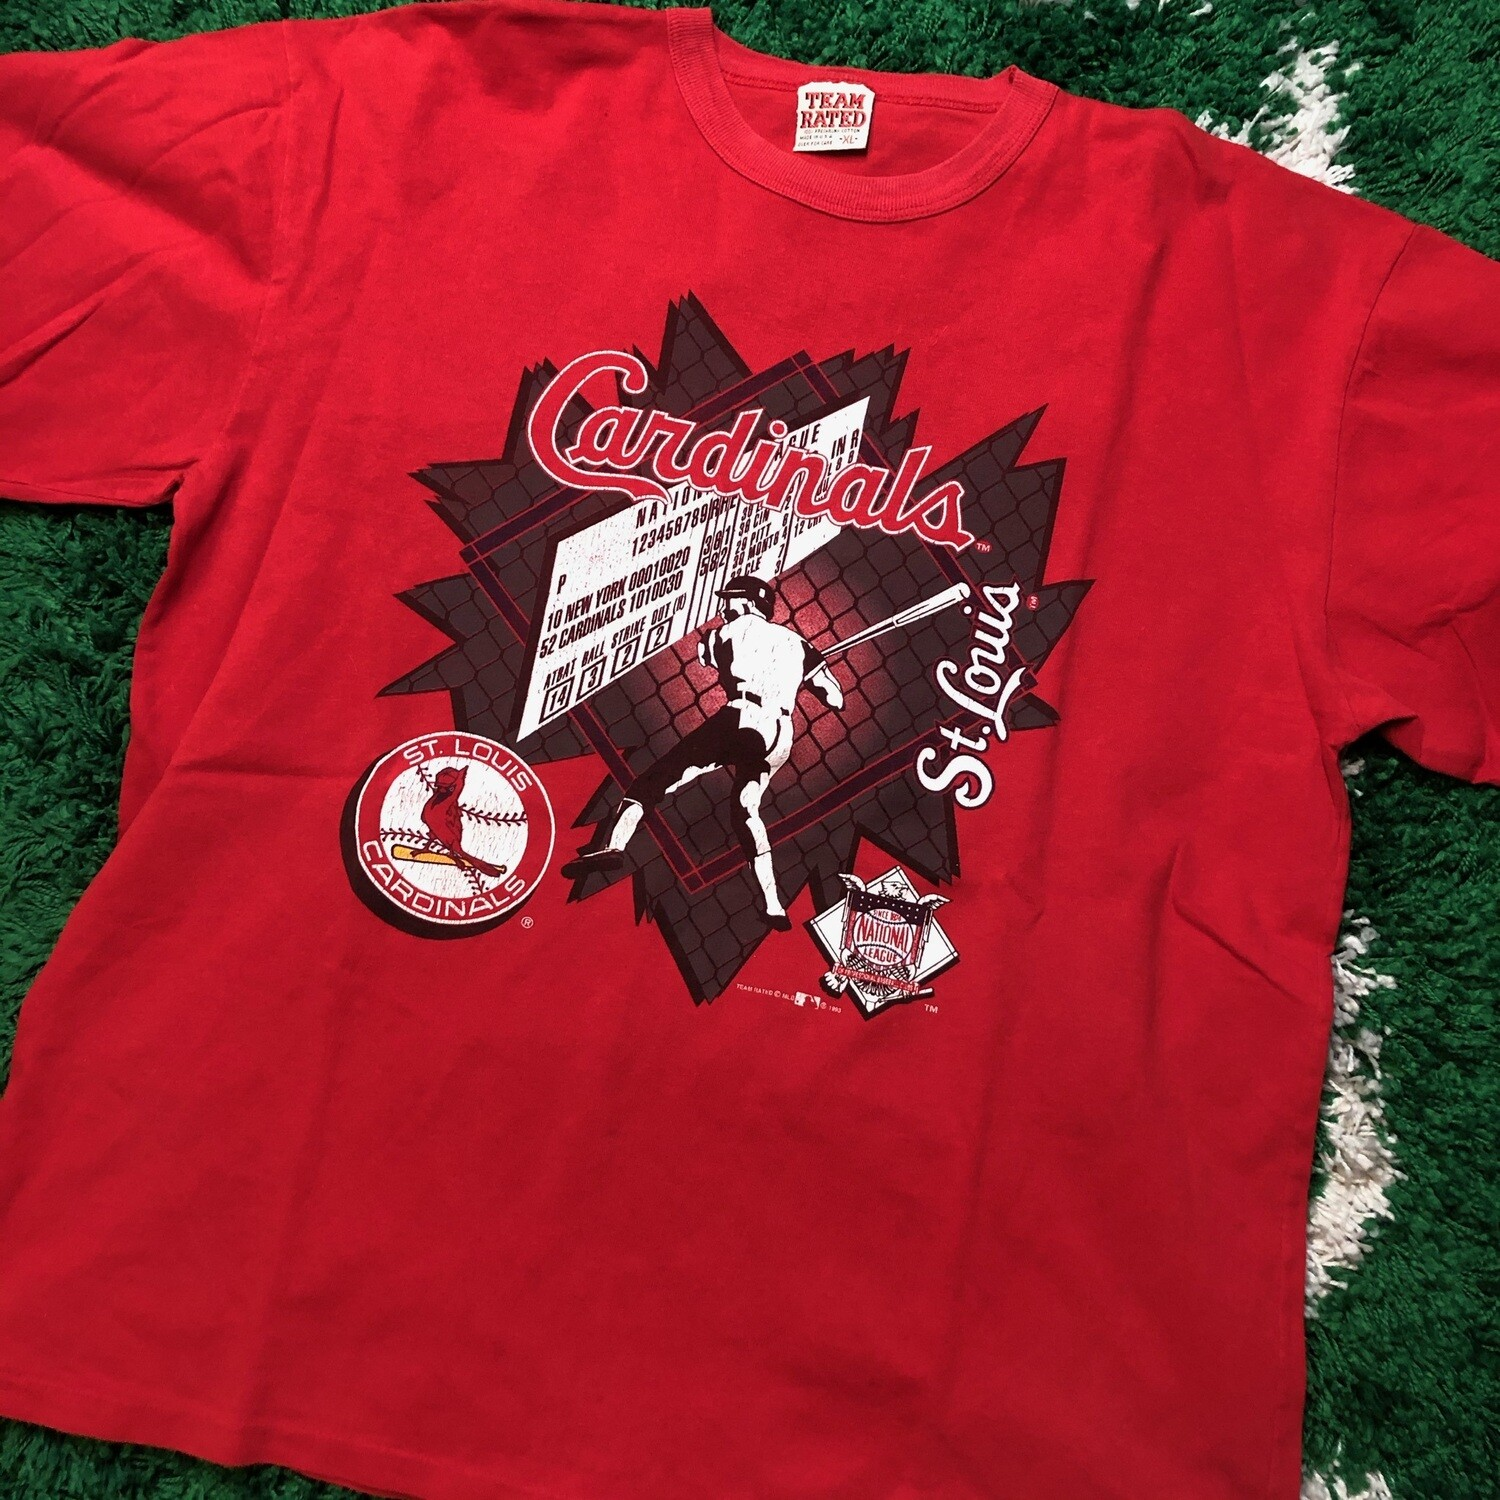 St. Louis Cardinals 1993 Tee Red Size XL